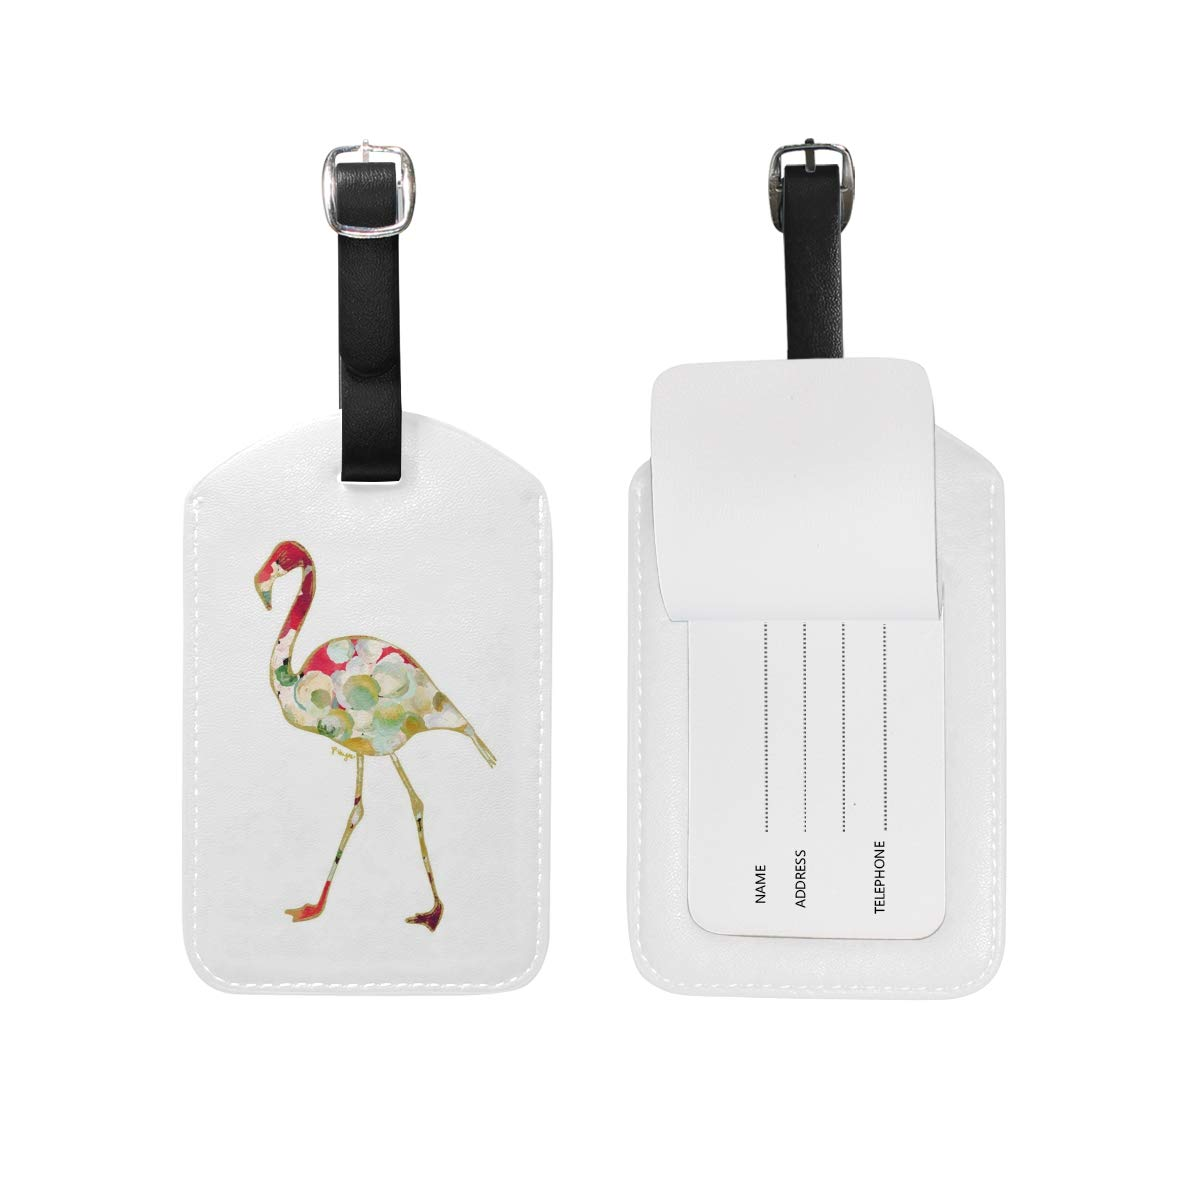 Aibileen Pink Flamingo Art Design Luggage Tag Set of 1 Cruise Ship Suitcase Label Personalized